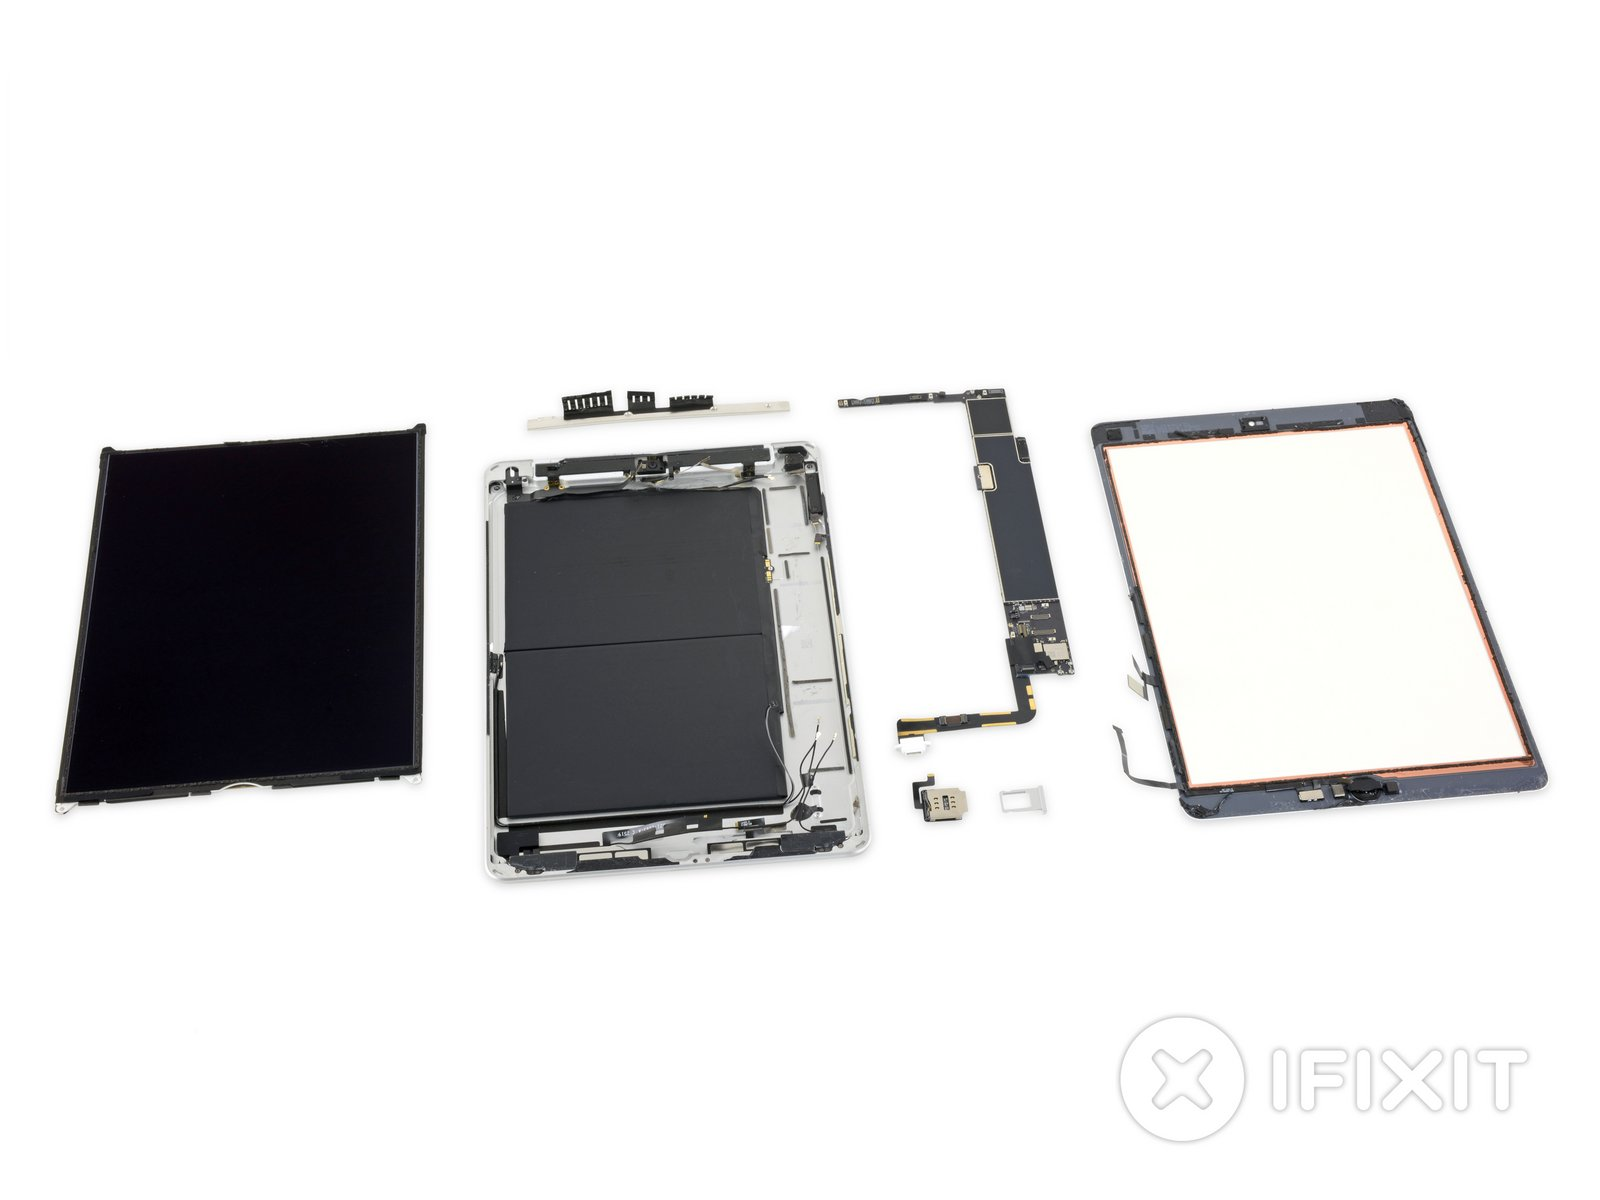 iFixit iPad 10.2 teardown